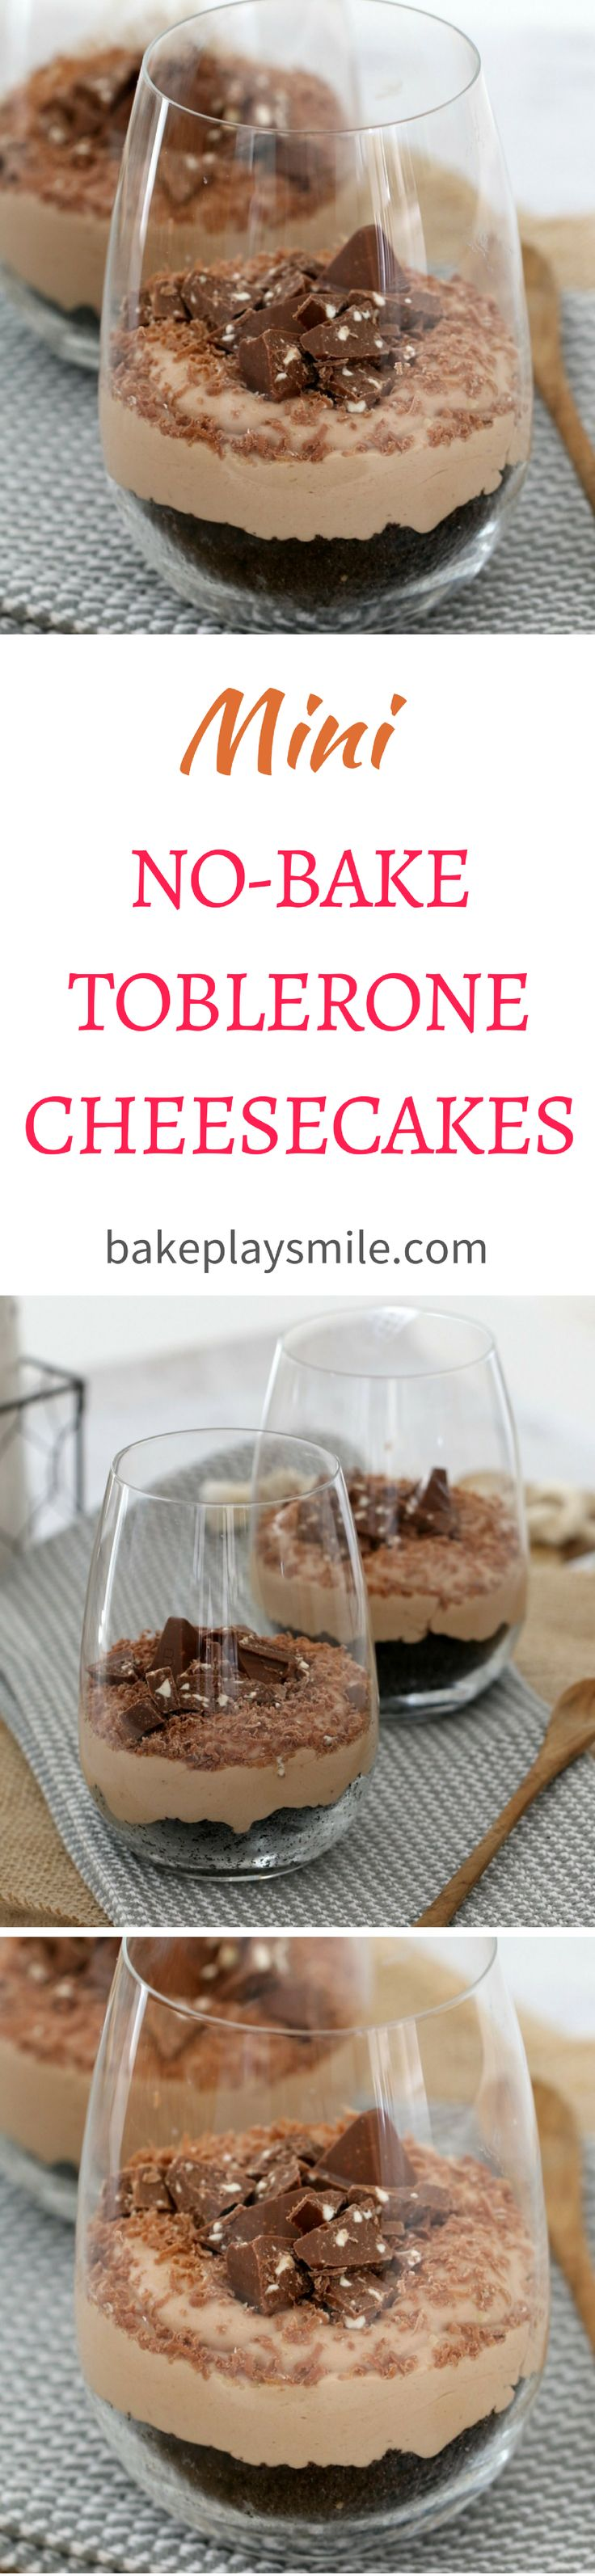 The most delicious mini no bake Toblerone cheesecakes you'll ever eat. Super quick and easy to prepare… these individual desserts really are the BEST!   #toblerone #mini #individual #cheesecakes #baking #dessert #conventional #thermomix #recipe